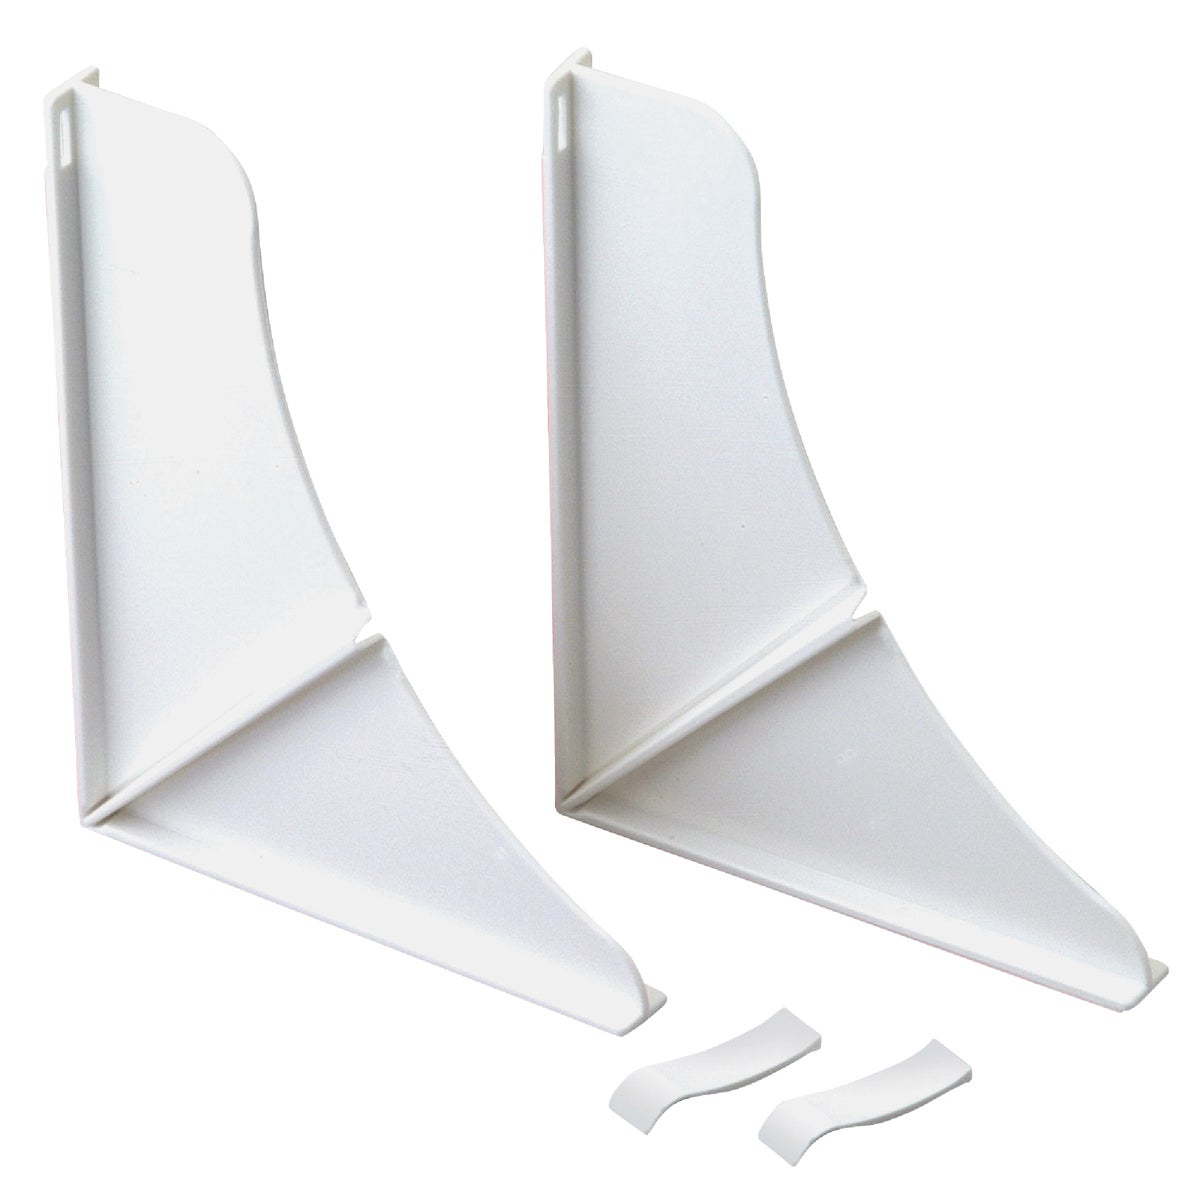 WHT SPLASH GUARDS - 76814WH by Delta Faucet Co